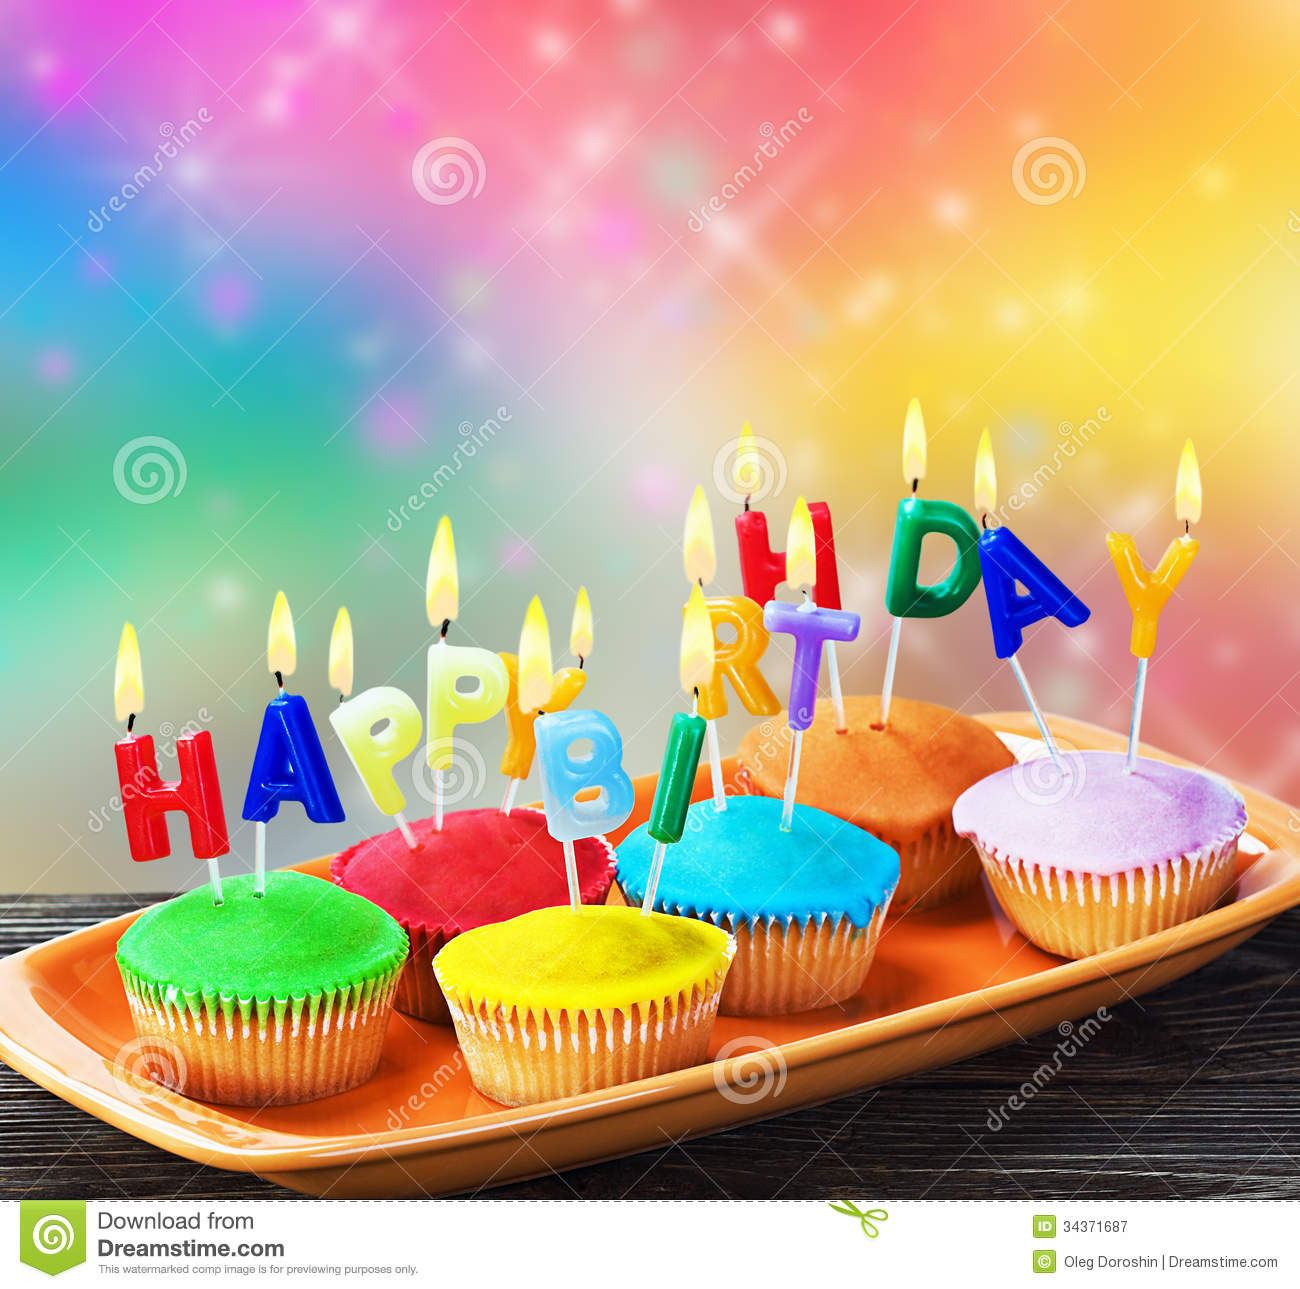 Happy Birthday Cupcakes With Candles Stock Image